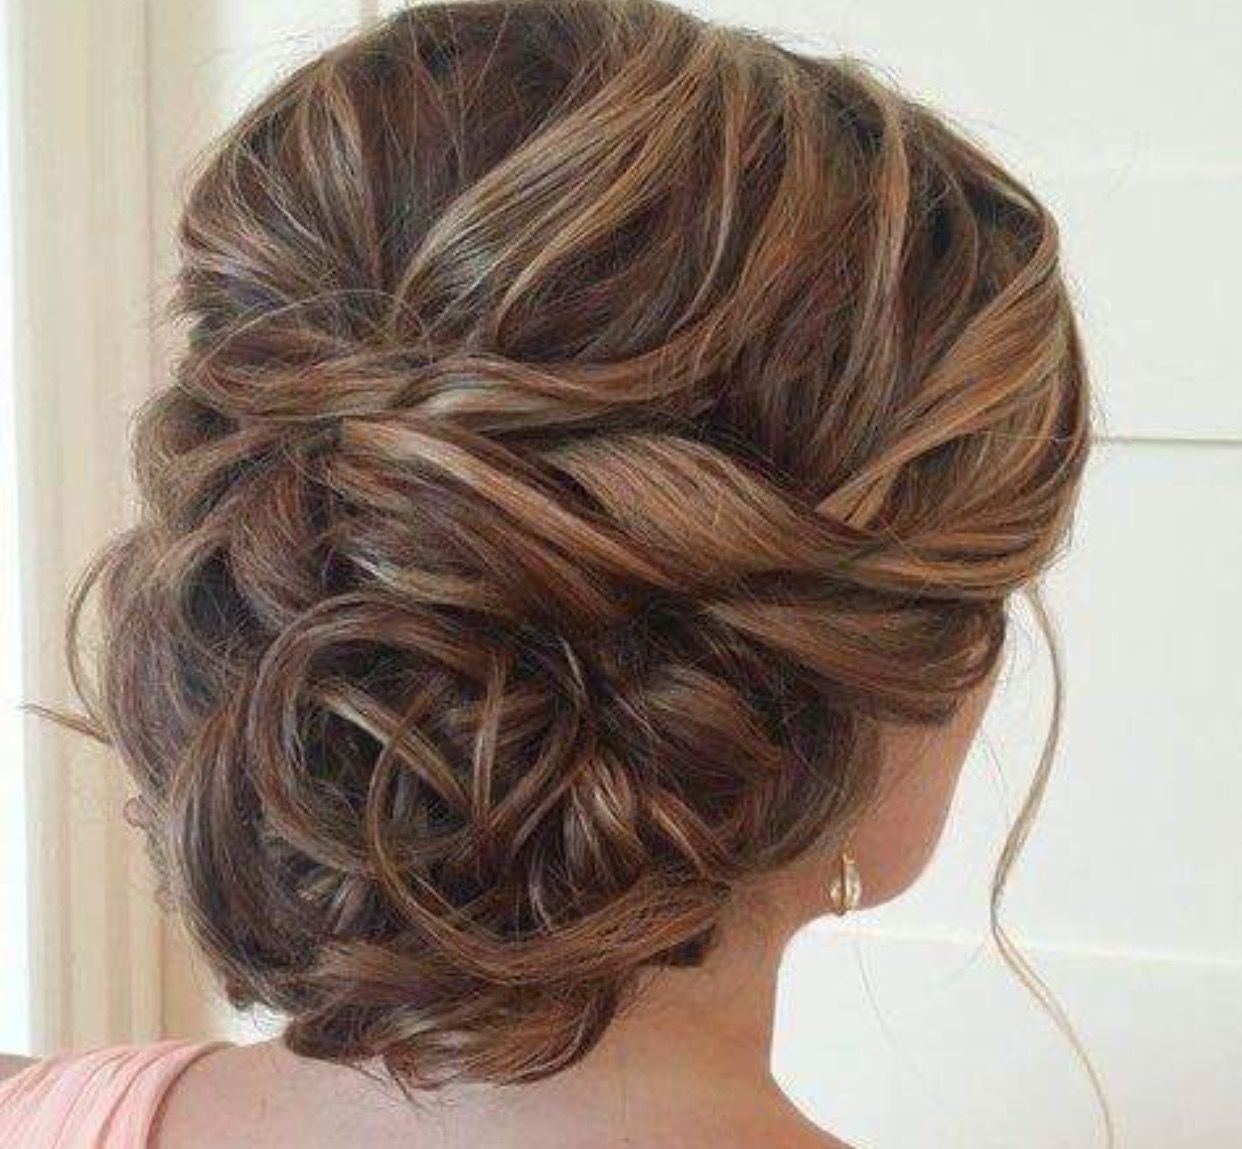 Pin By Smeyye On Sac Model Pinterest Weddings Hair Makeup And